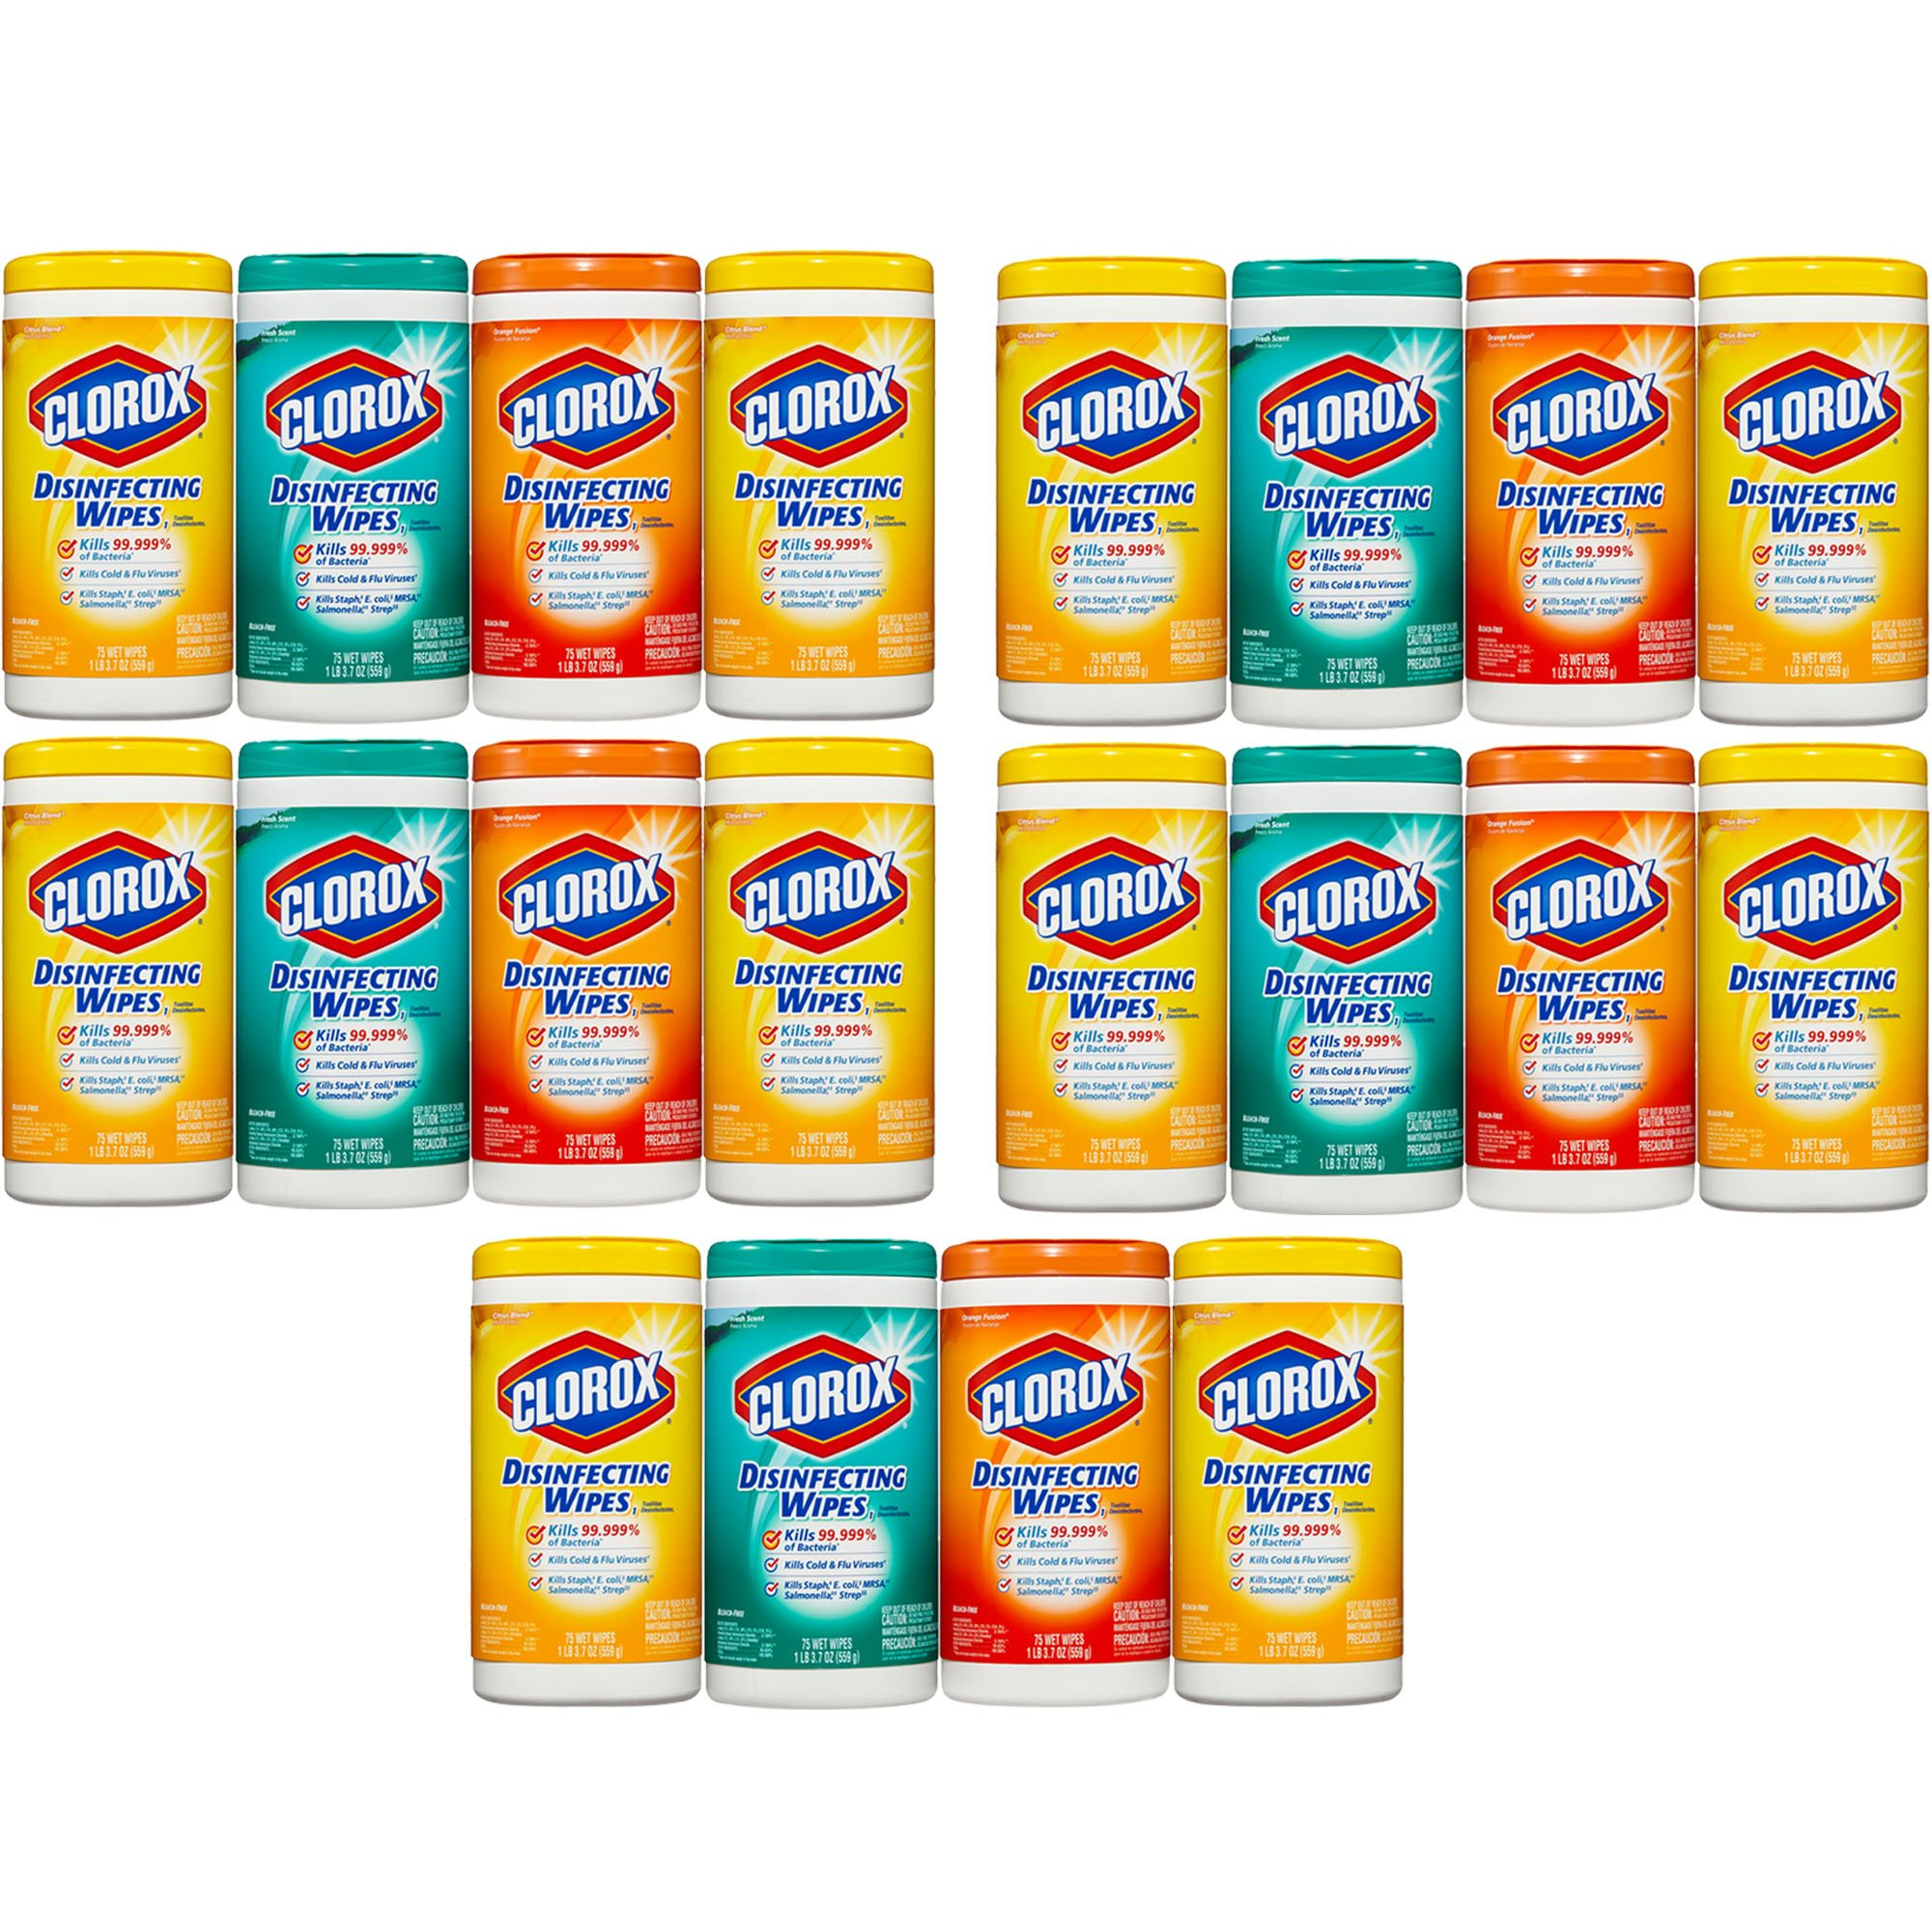 Clorox Disinfecting Cleaning Wipes Value Pack, Crisp Lemon Scent, Fresh Scent and Orange Fusion Scent, 75 Wipes each, 5-Pack (20ct)